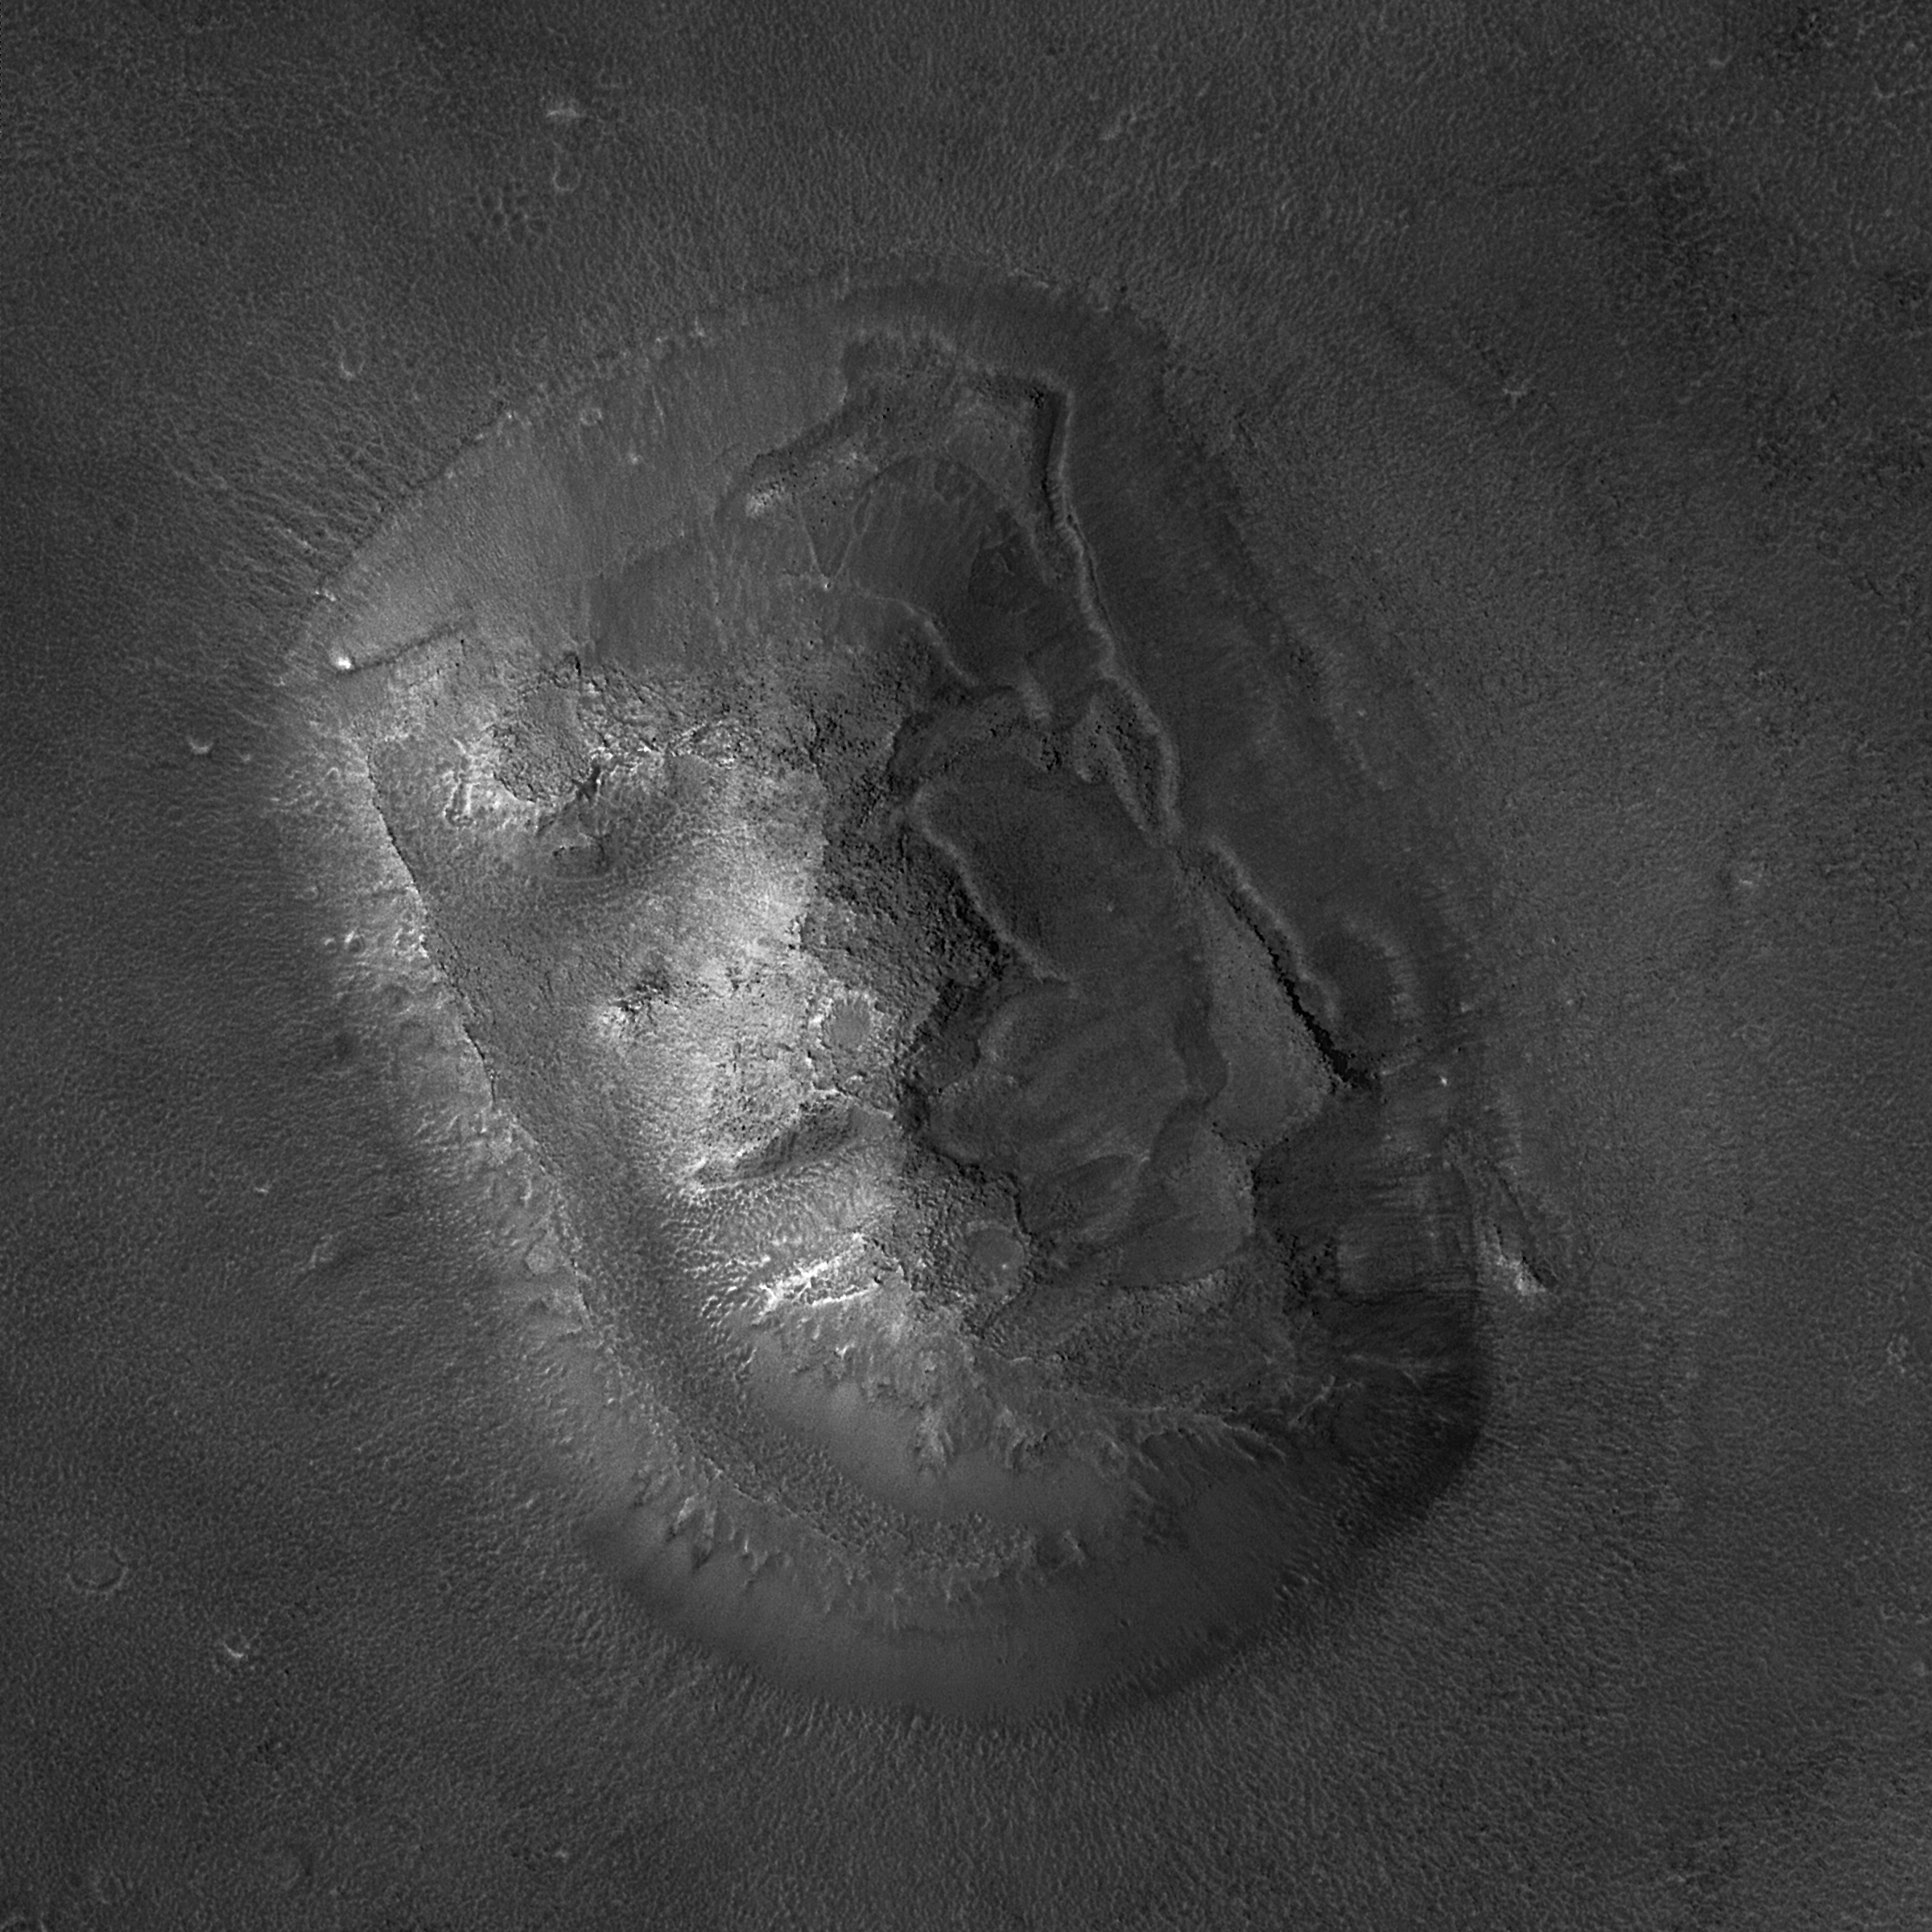 The Fameous Face Of Mars Up Close Cydonia Region Of Mars Weltall Astronomie Raumfahrt